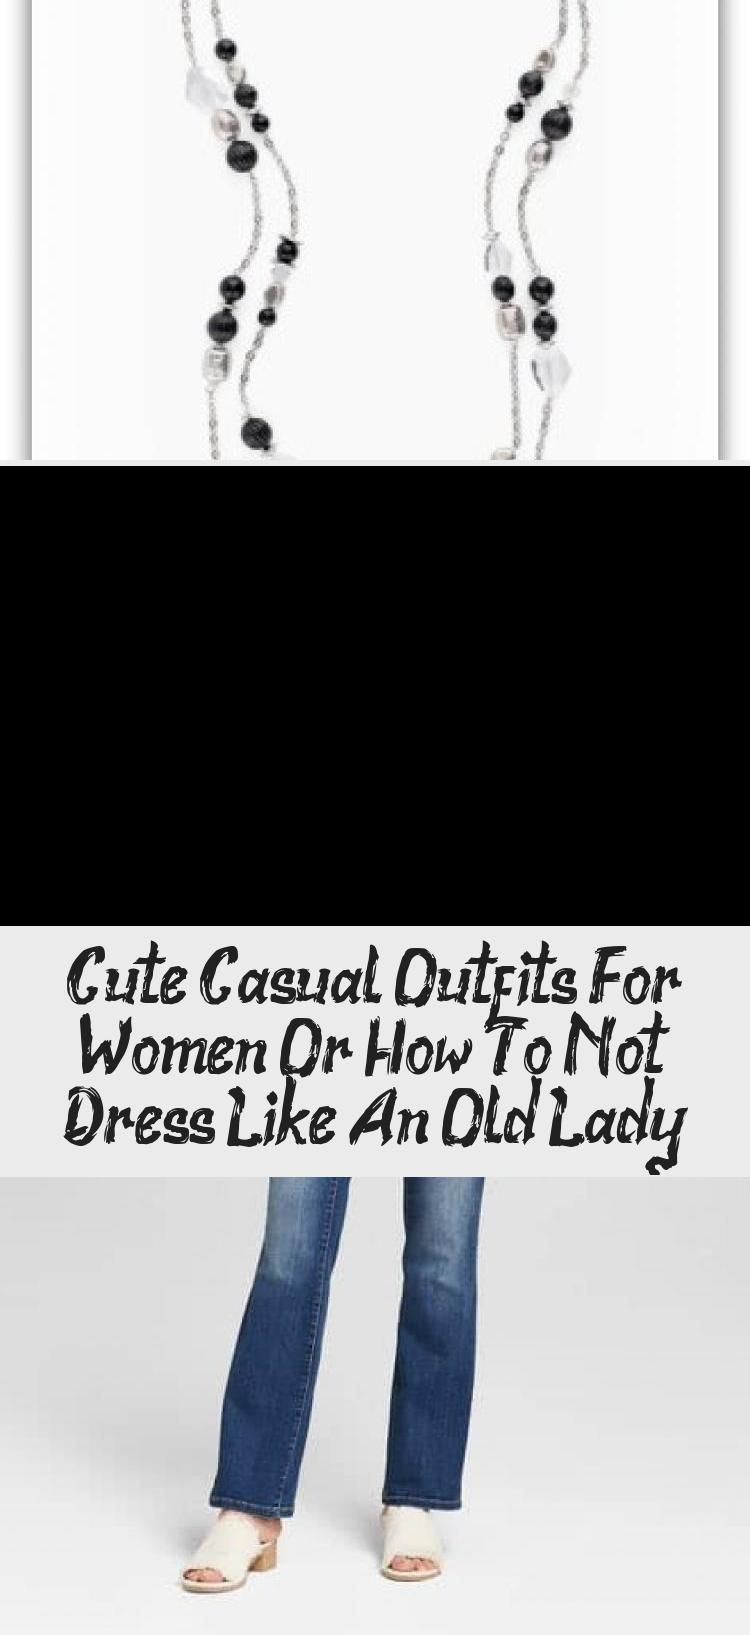 Cute casual outfits for women that are simple comfy and of course not for old ladies Everyday womens outfits for work play or the weekend Women over 50 will find somethin...